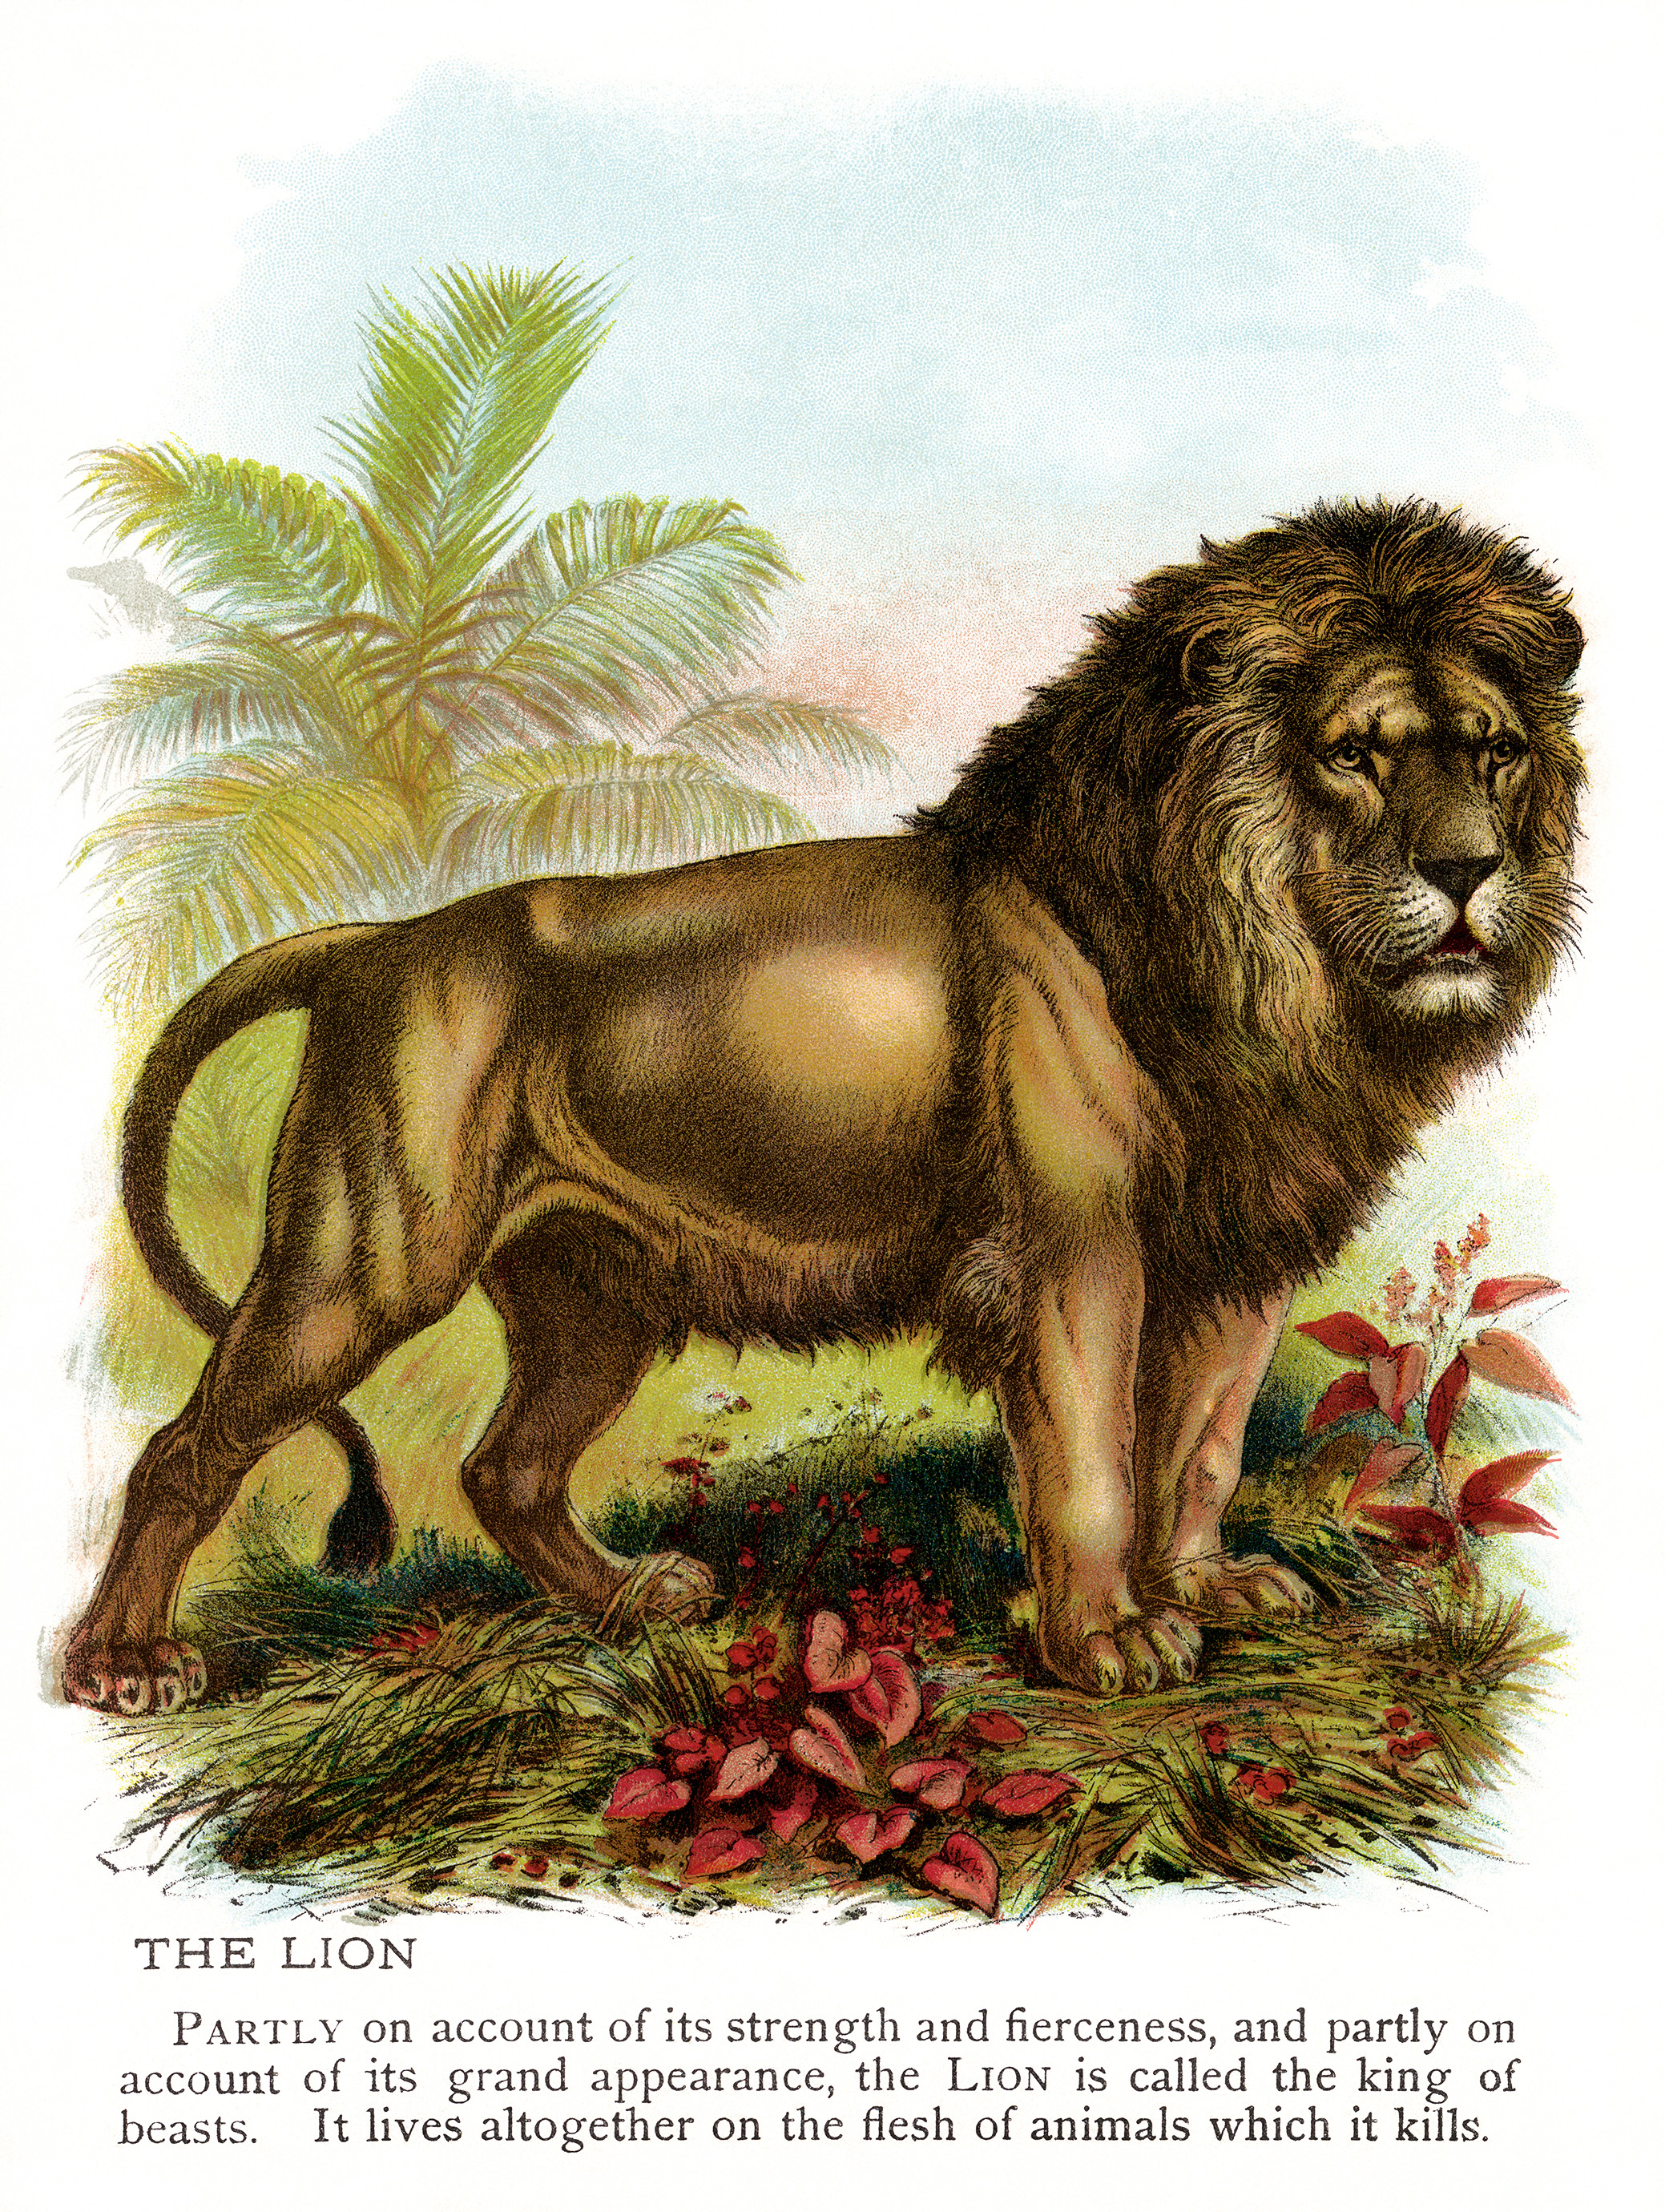 vintage lion clip art, lion illustration, animal printable picture, antique color lion image